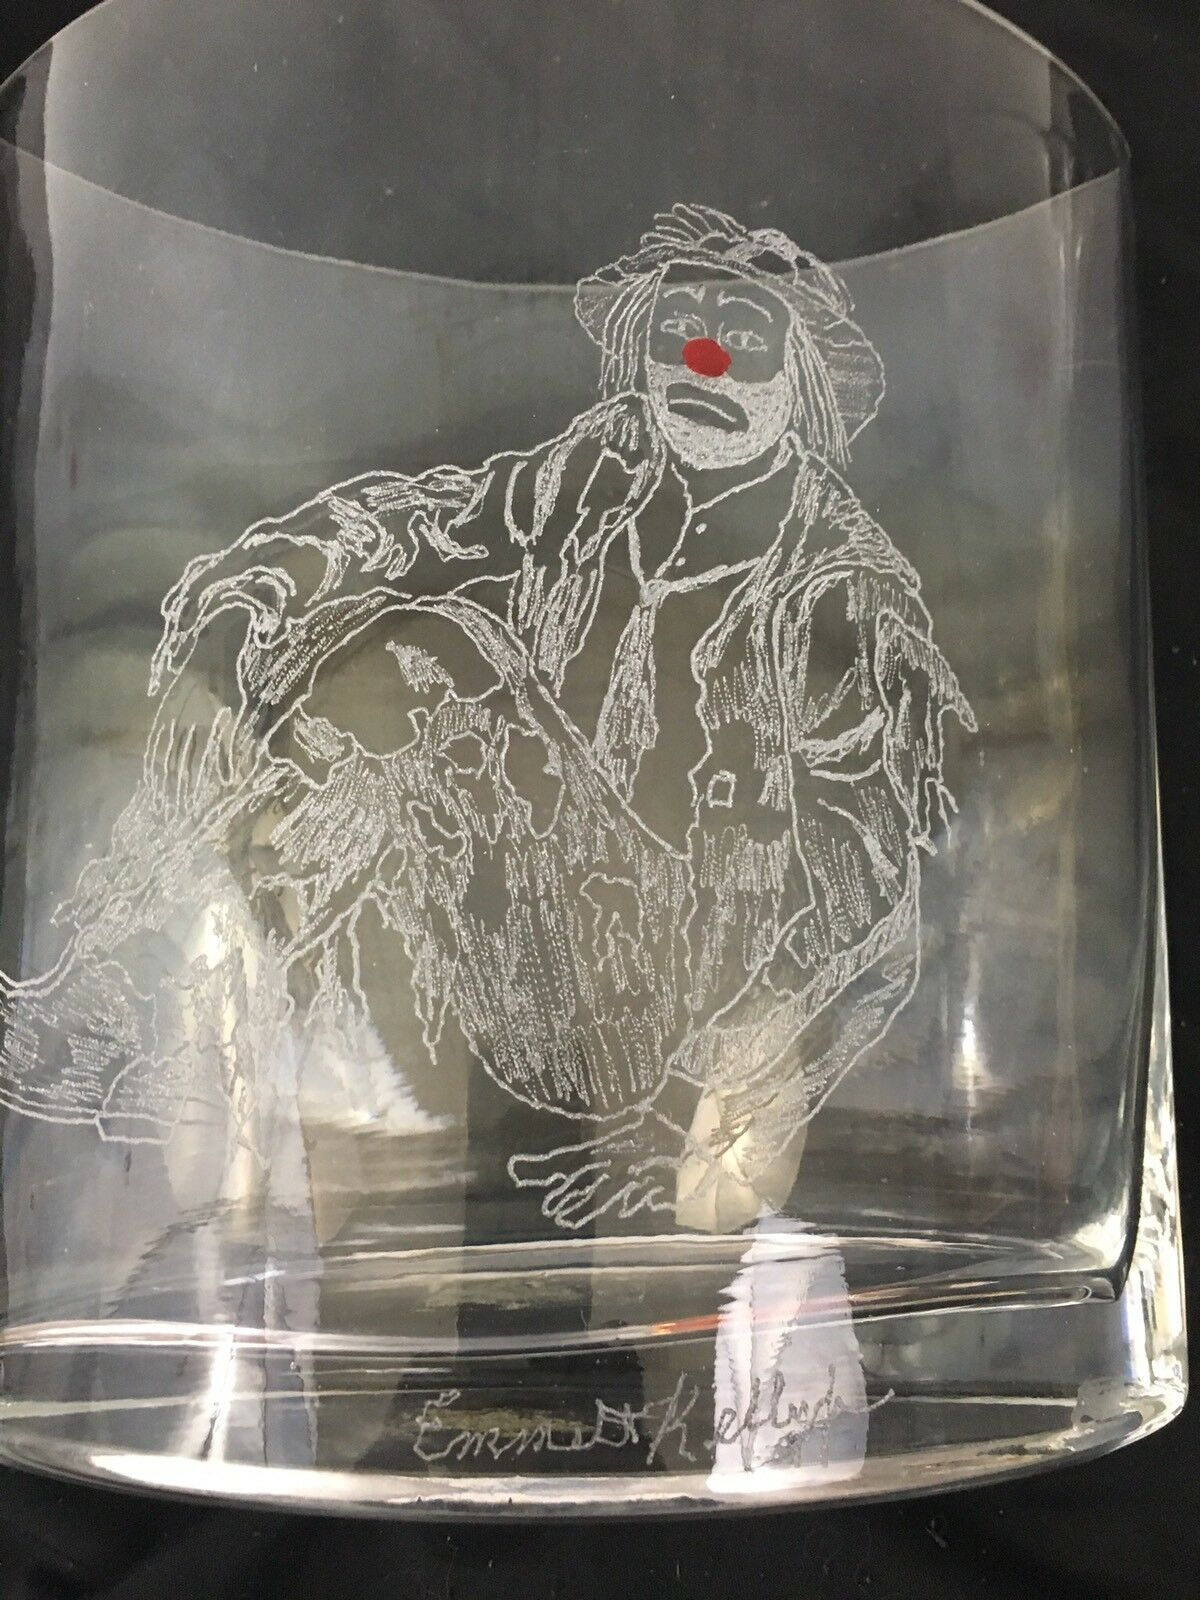 One Of A Kind Vases Hand Etched With Emmett Kelly Images Set Of 6 Без бренда - фотография #2